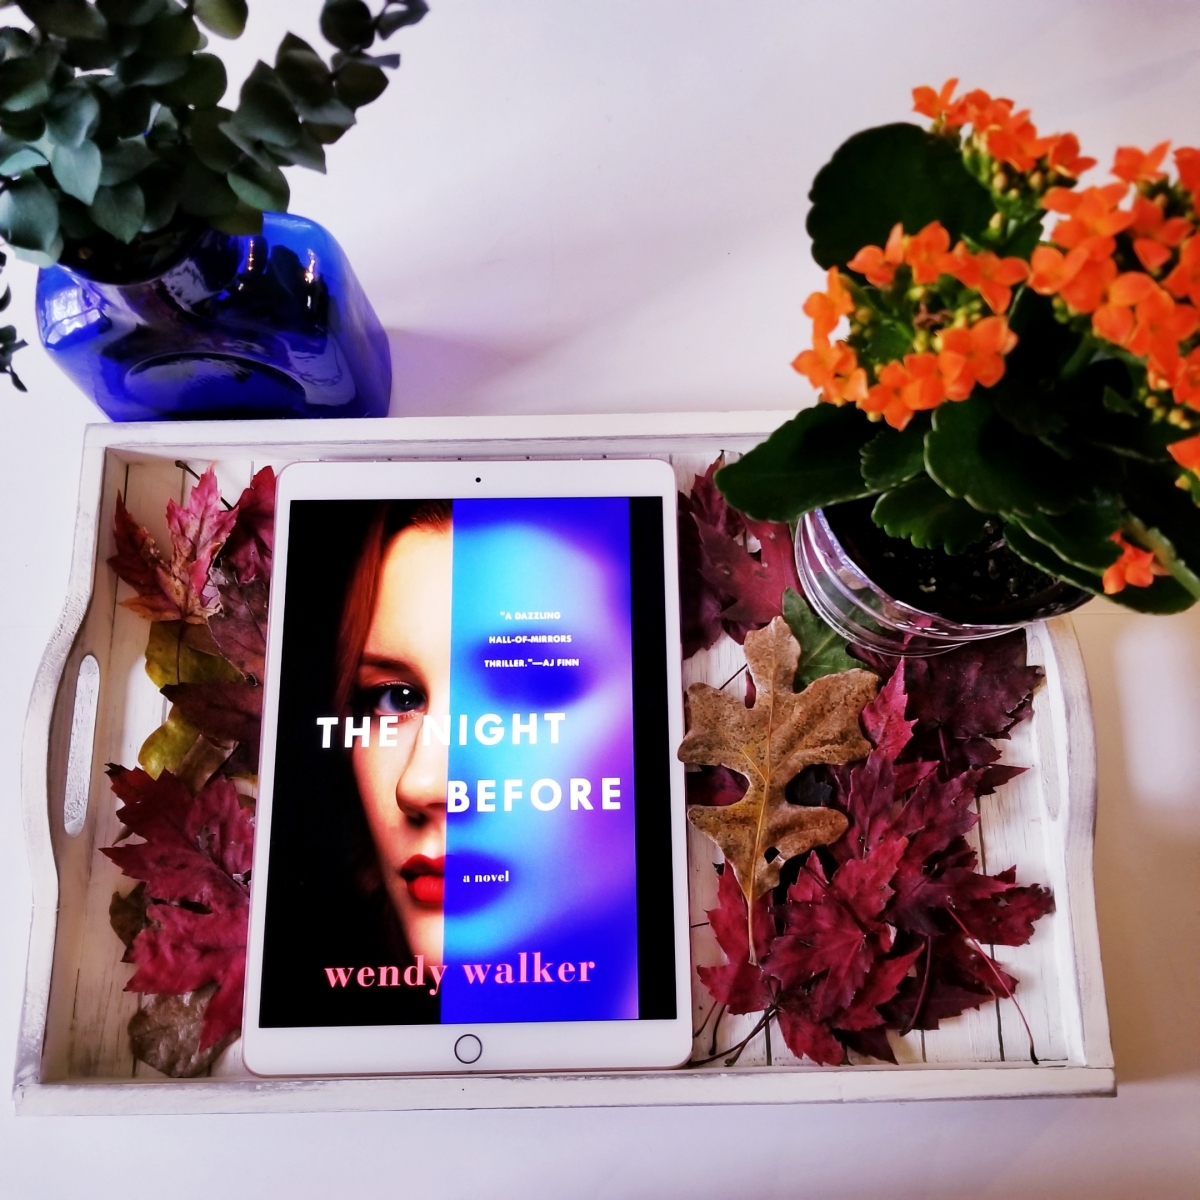 The Night Before by Wendy Walker #bookreview #tarheelreader #thrthenightbefore @wendy_walker @stmartinspress #thenightbefore